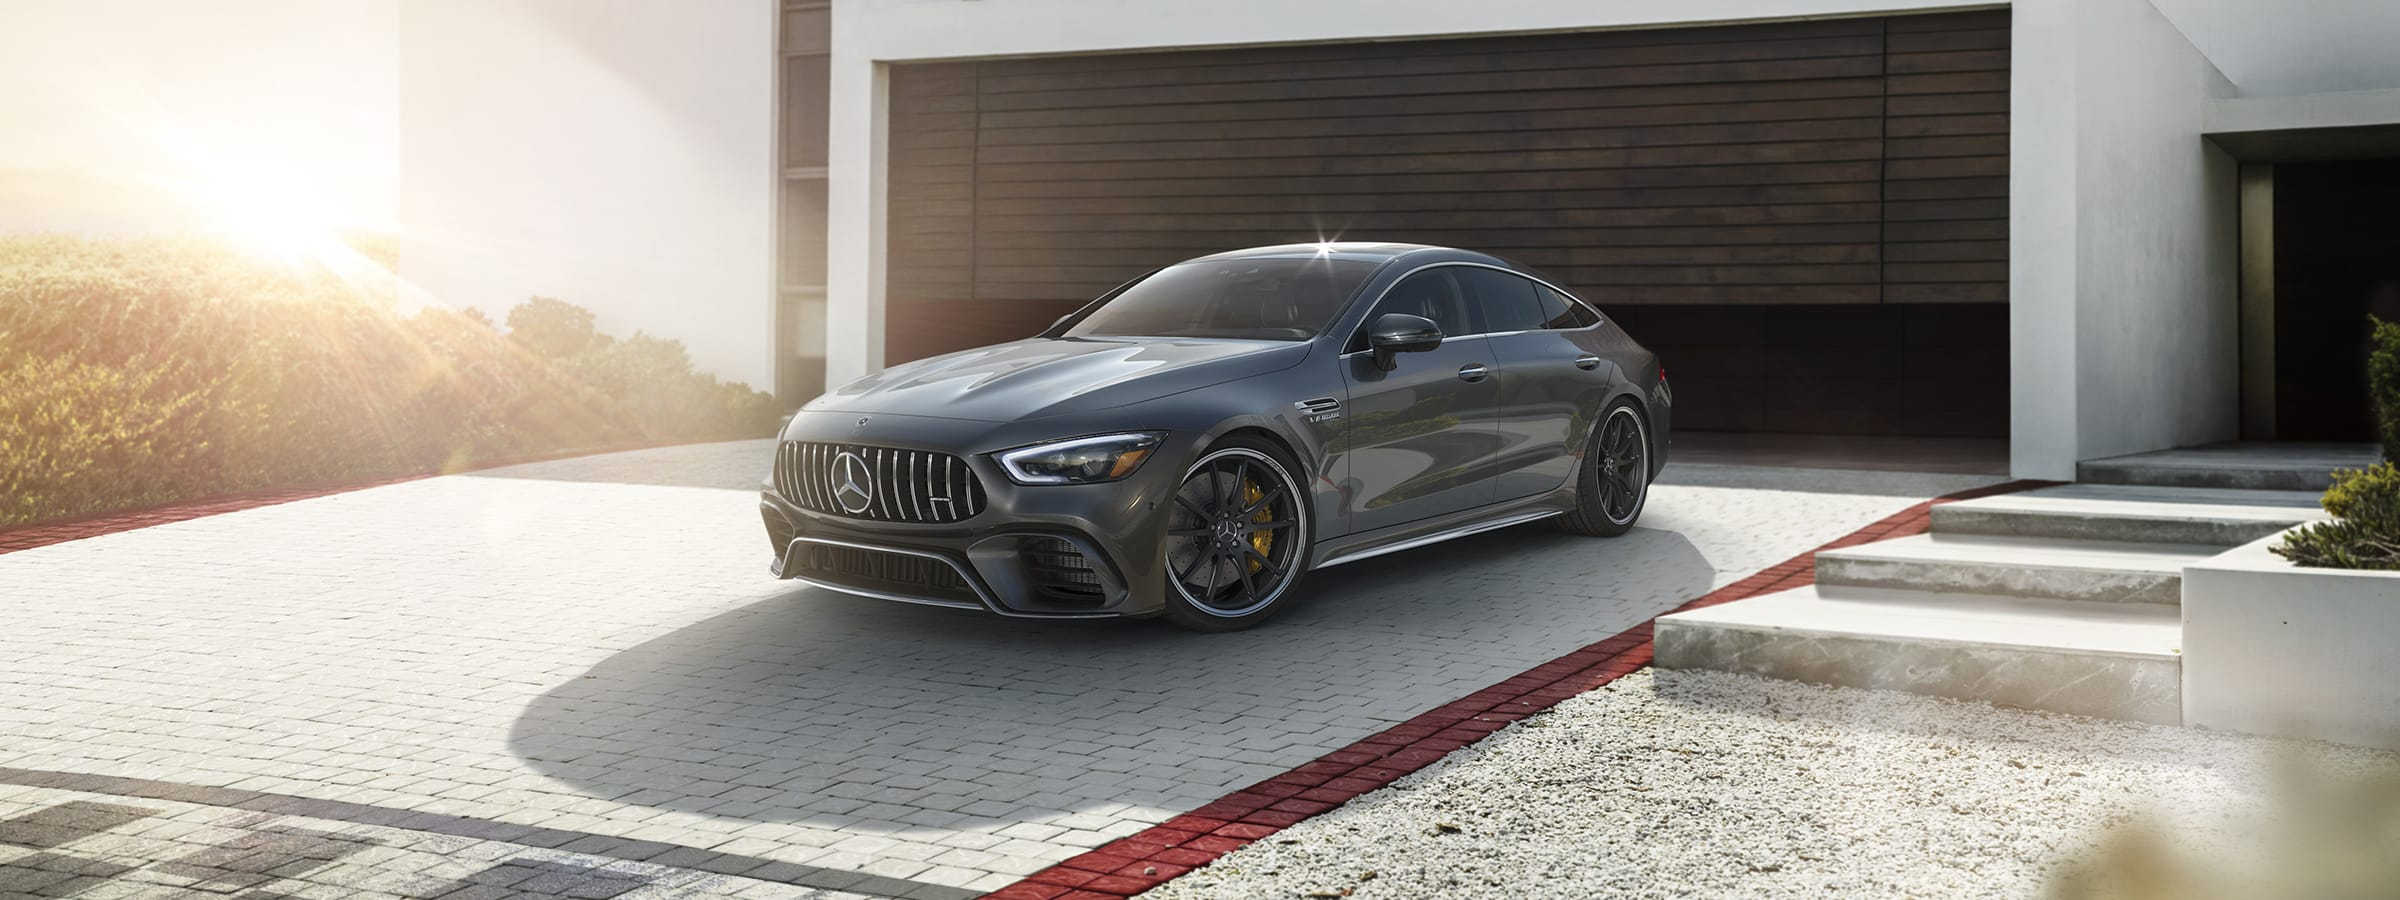 2019 AMG GT 4-Door Coupe